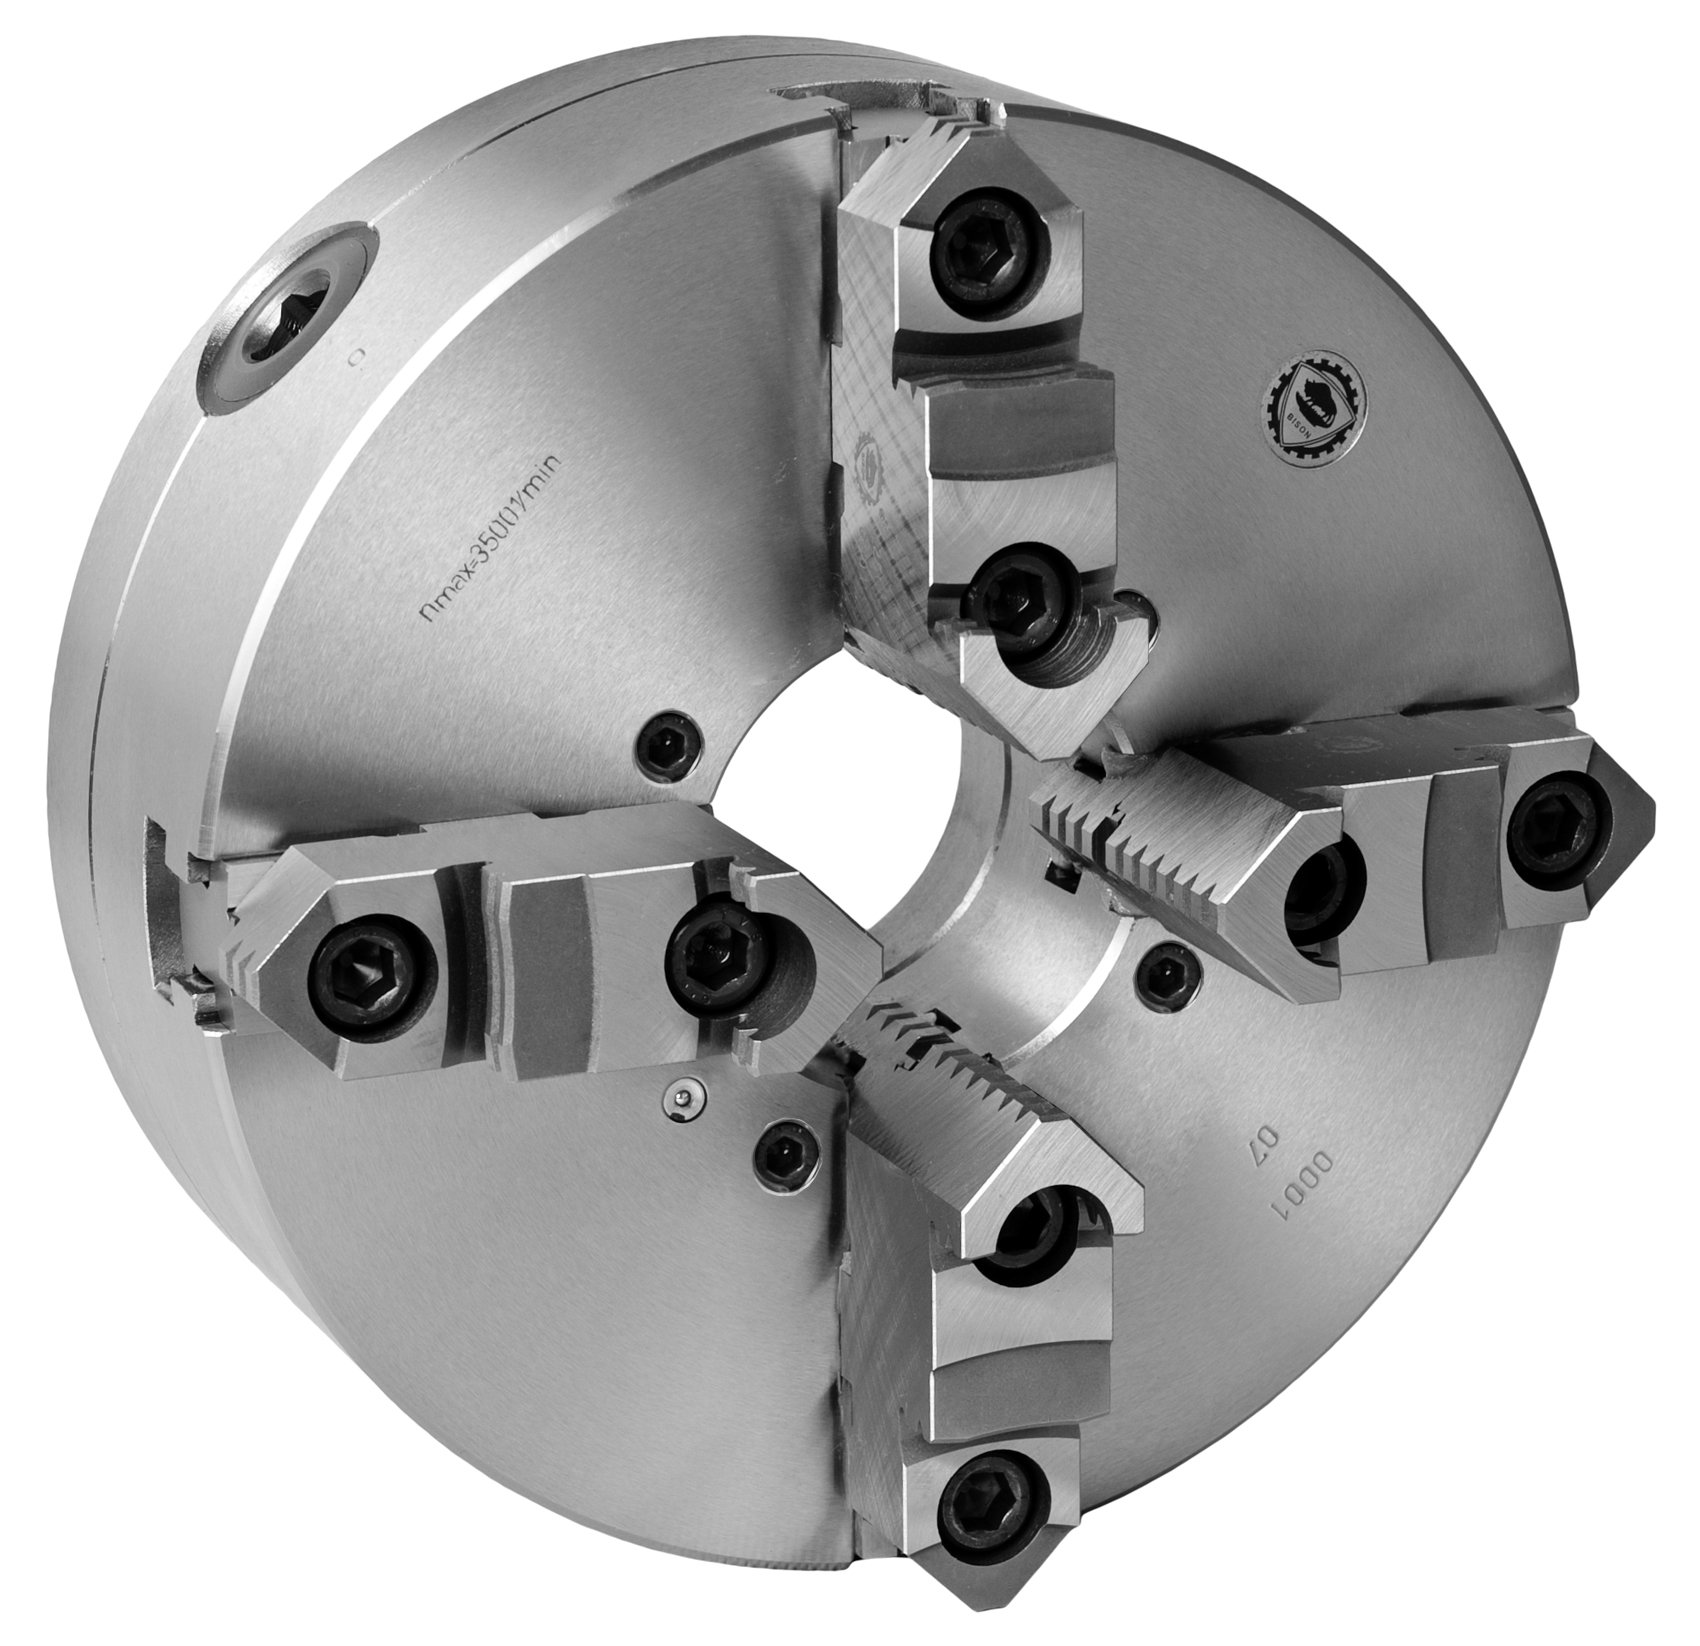 Bison 3705 4-Jaw Steel Self-Centring Scroll Chuck with Plain Back Mounting - DIN 6350.